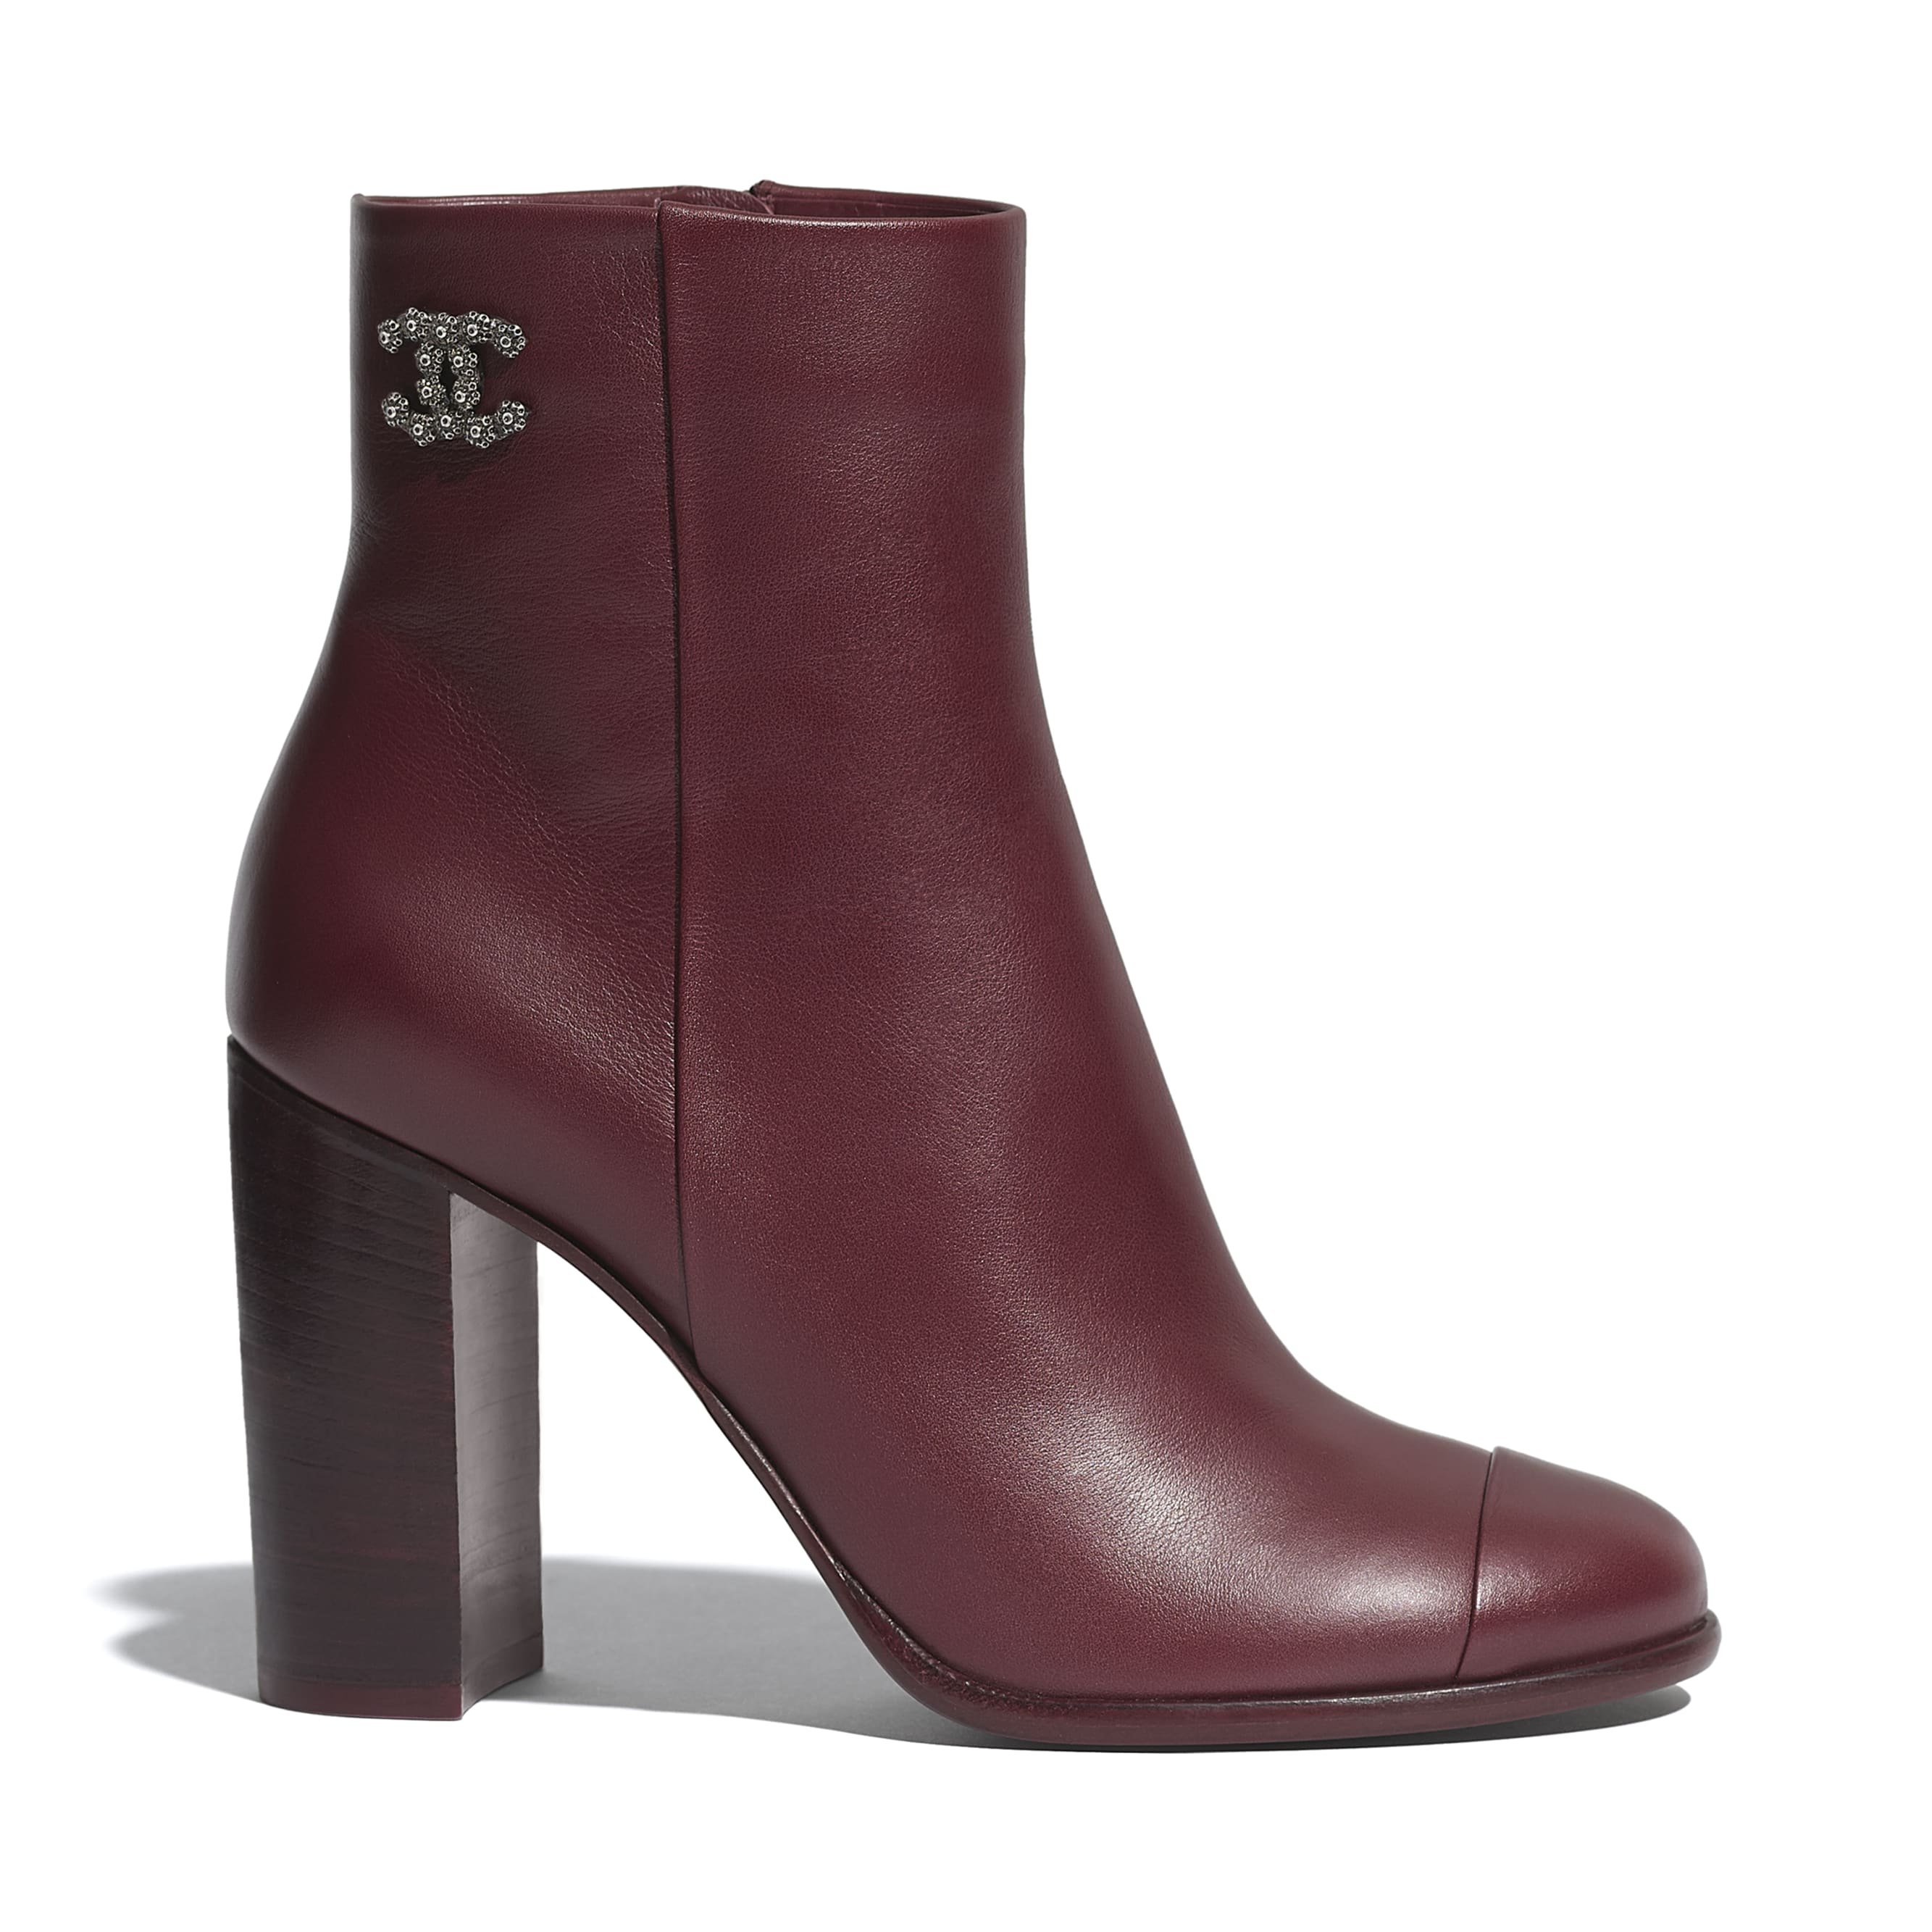 Ankle Boots - Burgundy - Calfskin - CHANEL - Default view - see standard sized version